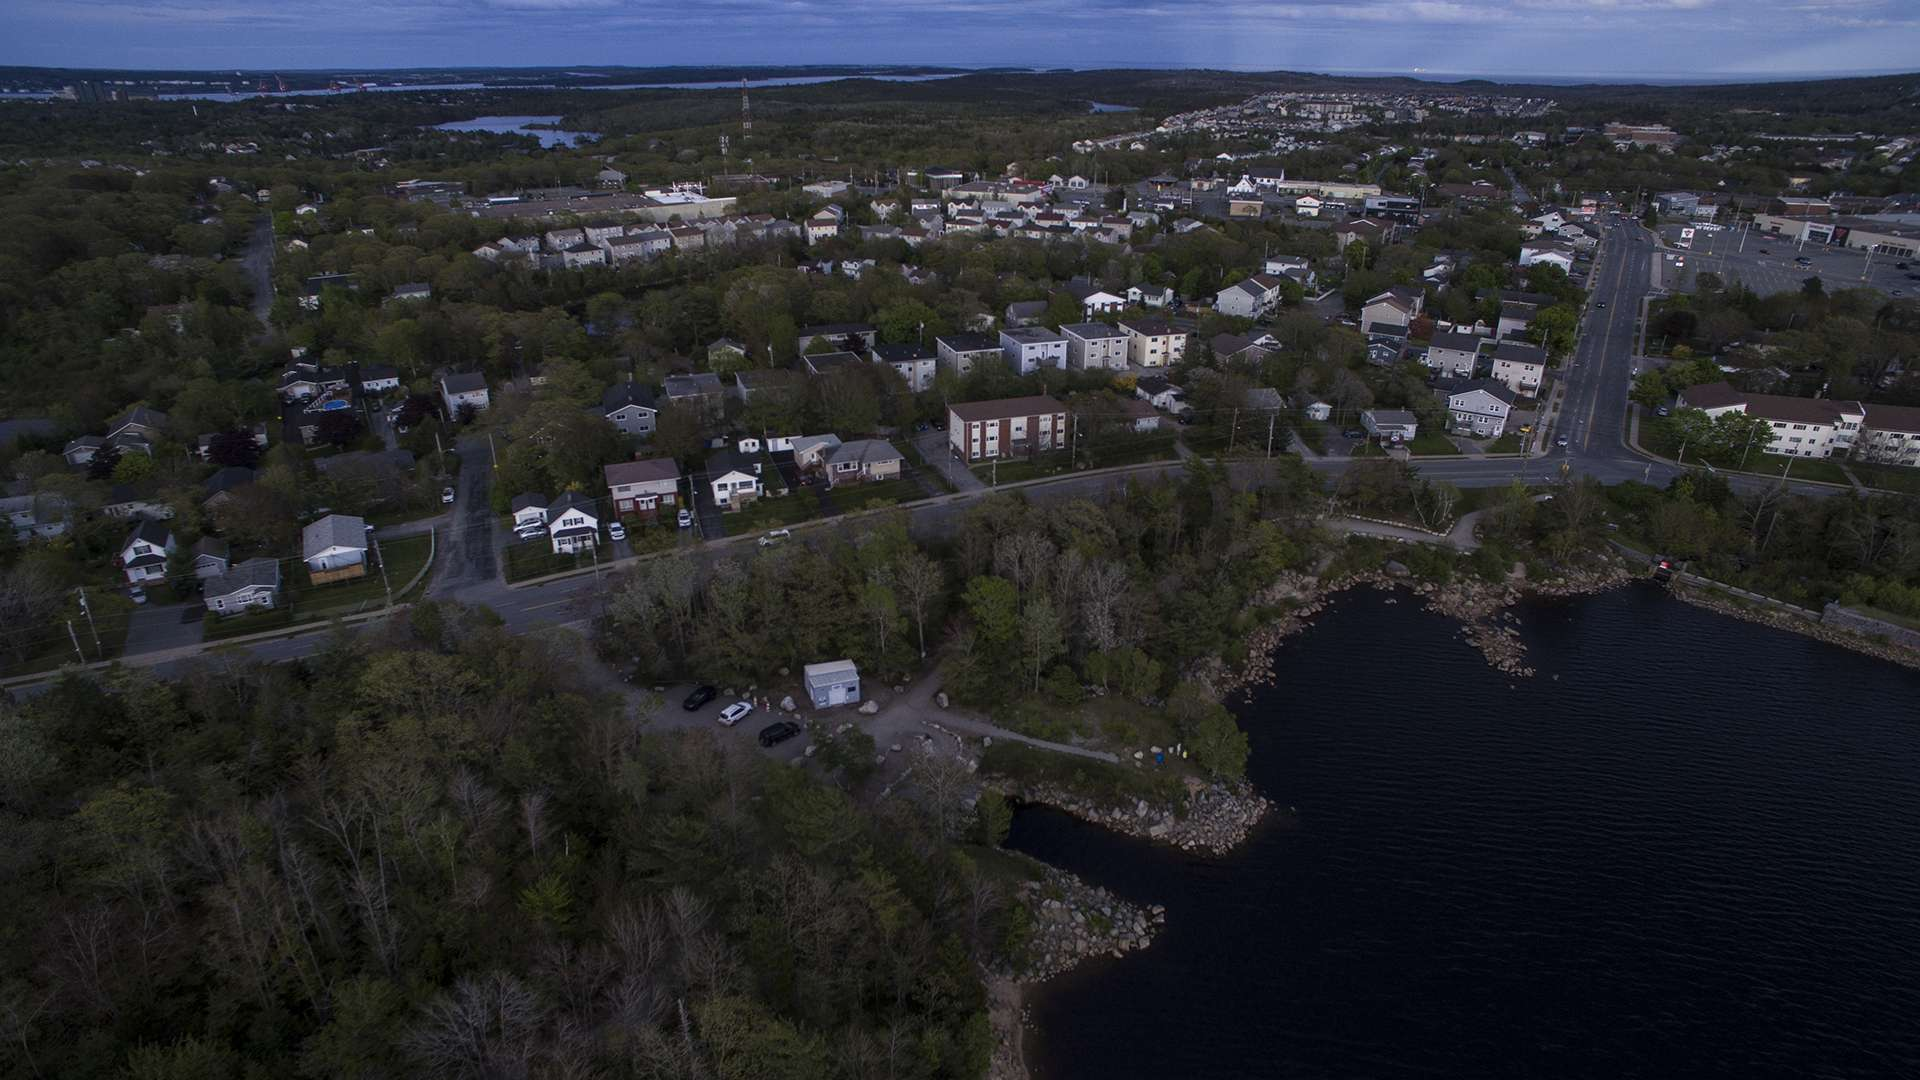 A view of Old Sambro road to Dentith road, showing the kayak Launch area and part of the dam at Long Lake Provincial Park in Spryfield on June 1, 2020.